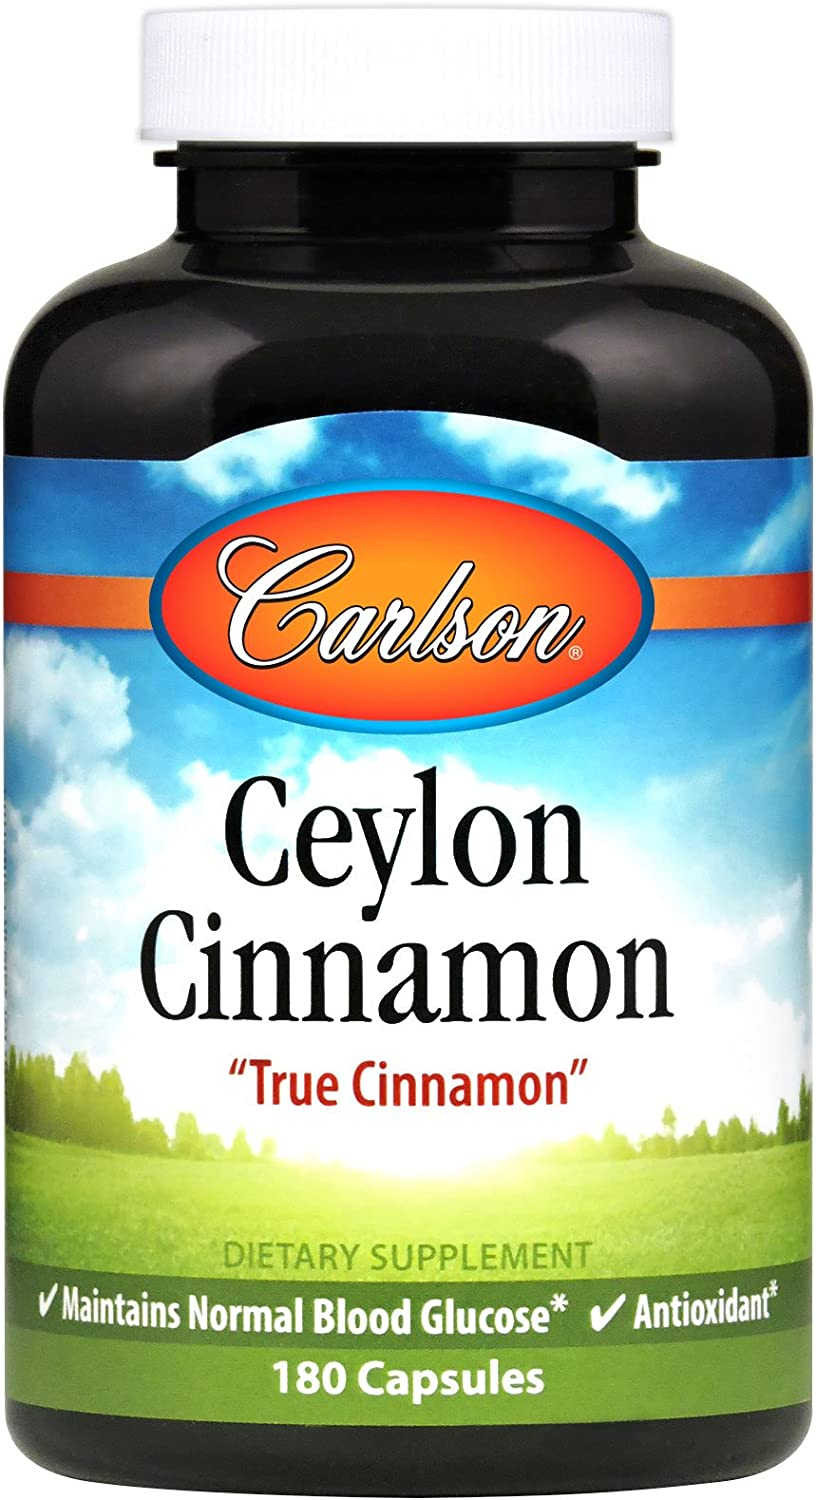 Carlson – Ceylon Cinnamon, 500 mg, Healthy Blood Sugar, True Cinnamon, 180 capsules